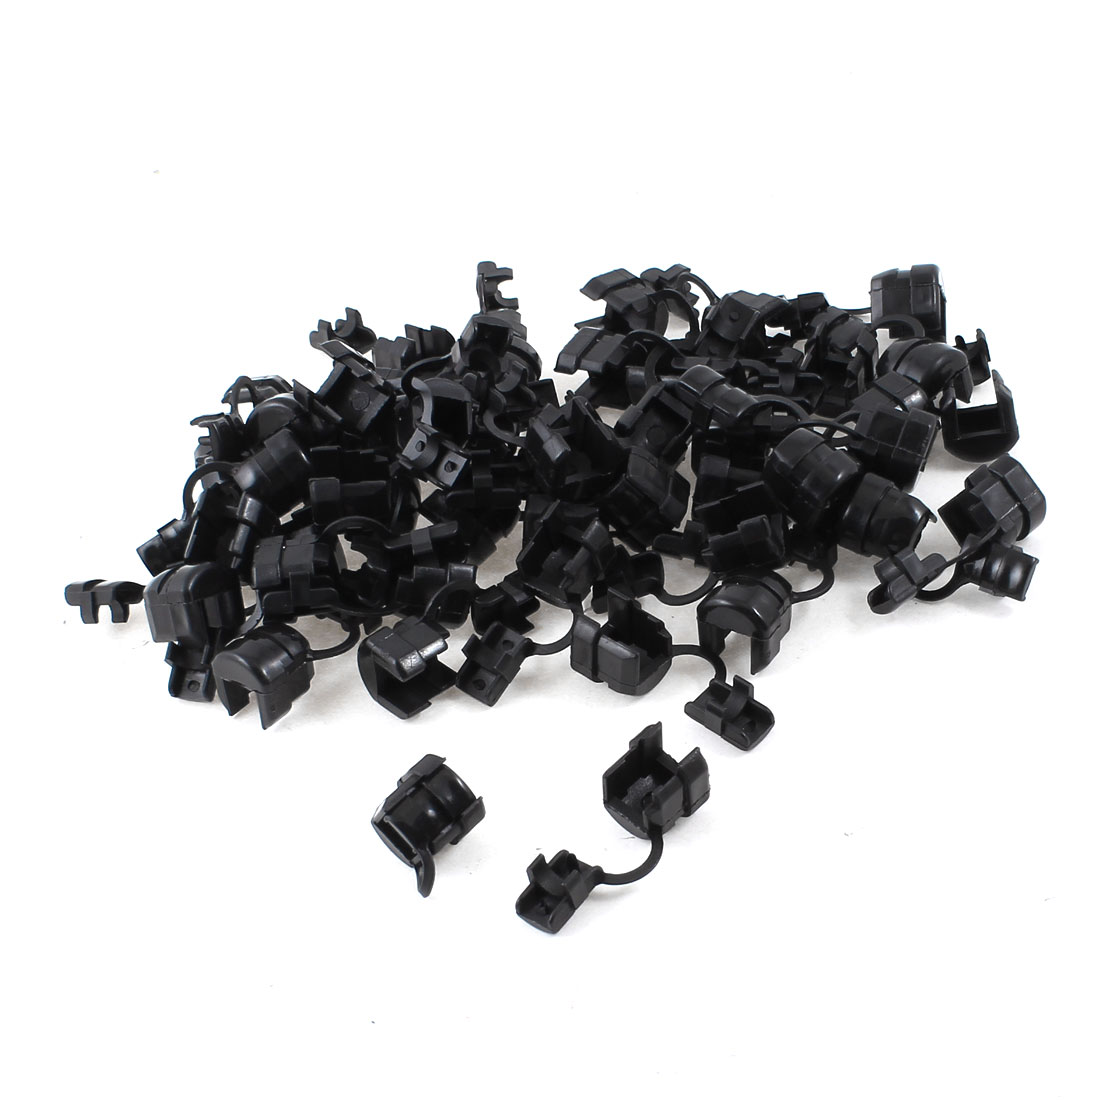 100 Pcs Black Nylon Wires Protectors Strain Relief Bushing for 4mm Round Cables